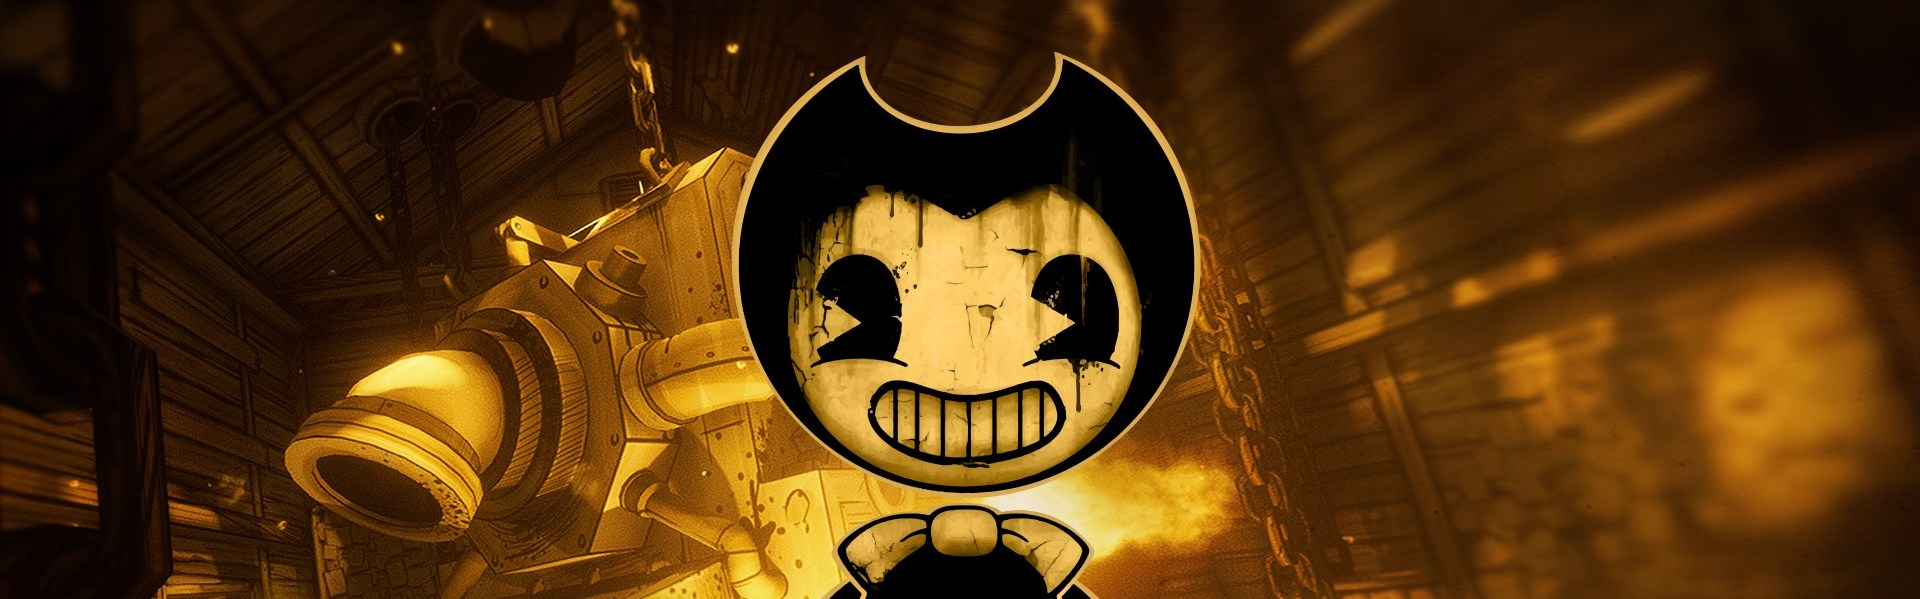 Bendy and the Ink Machine Steam Key GLOBAL